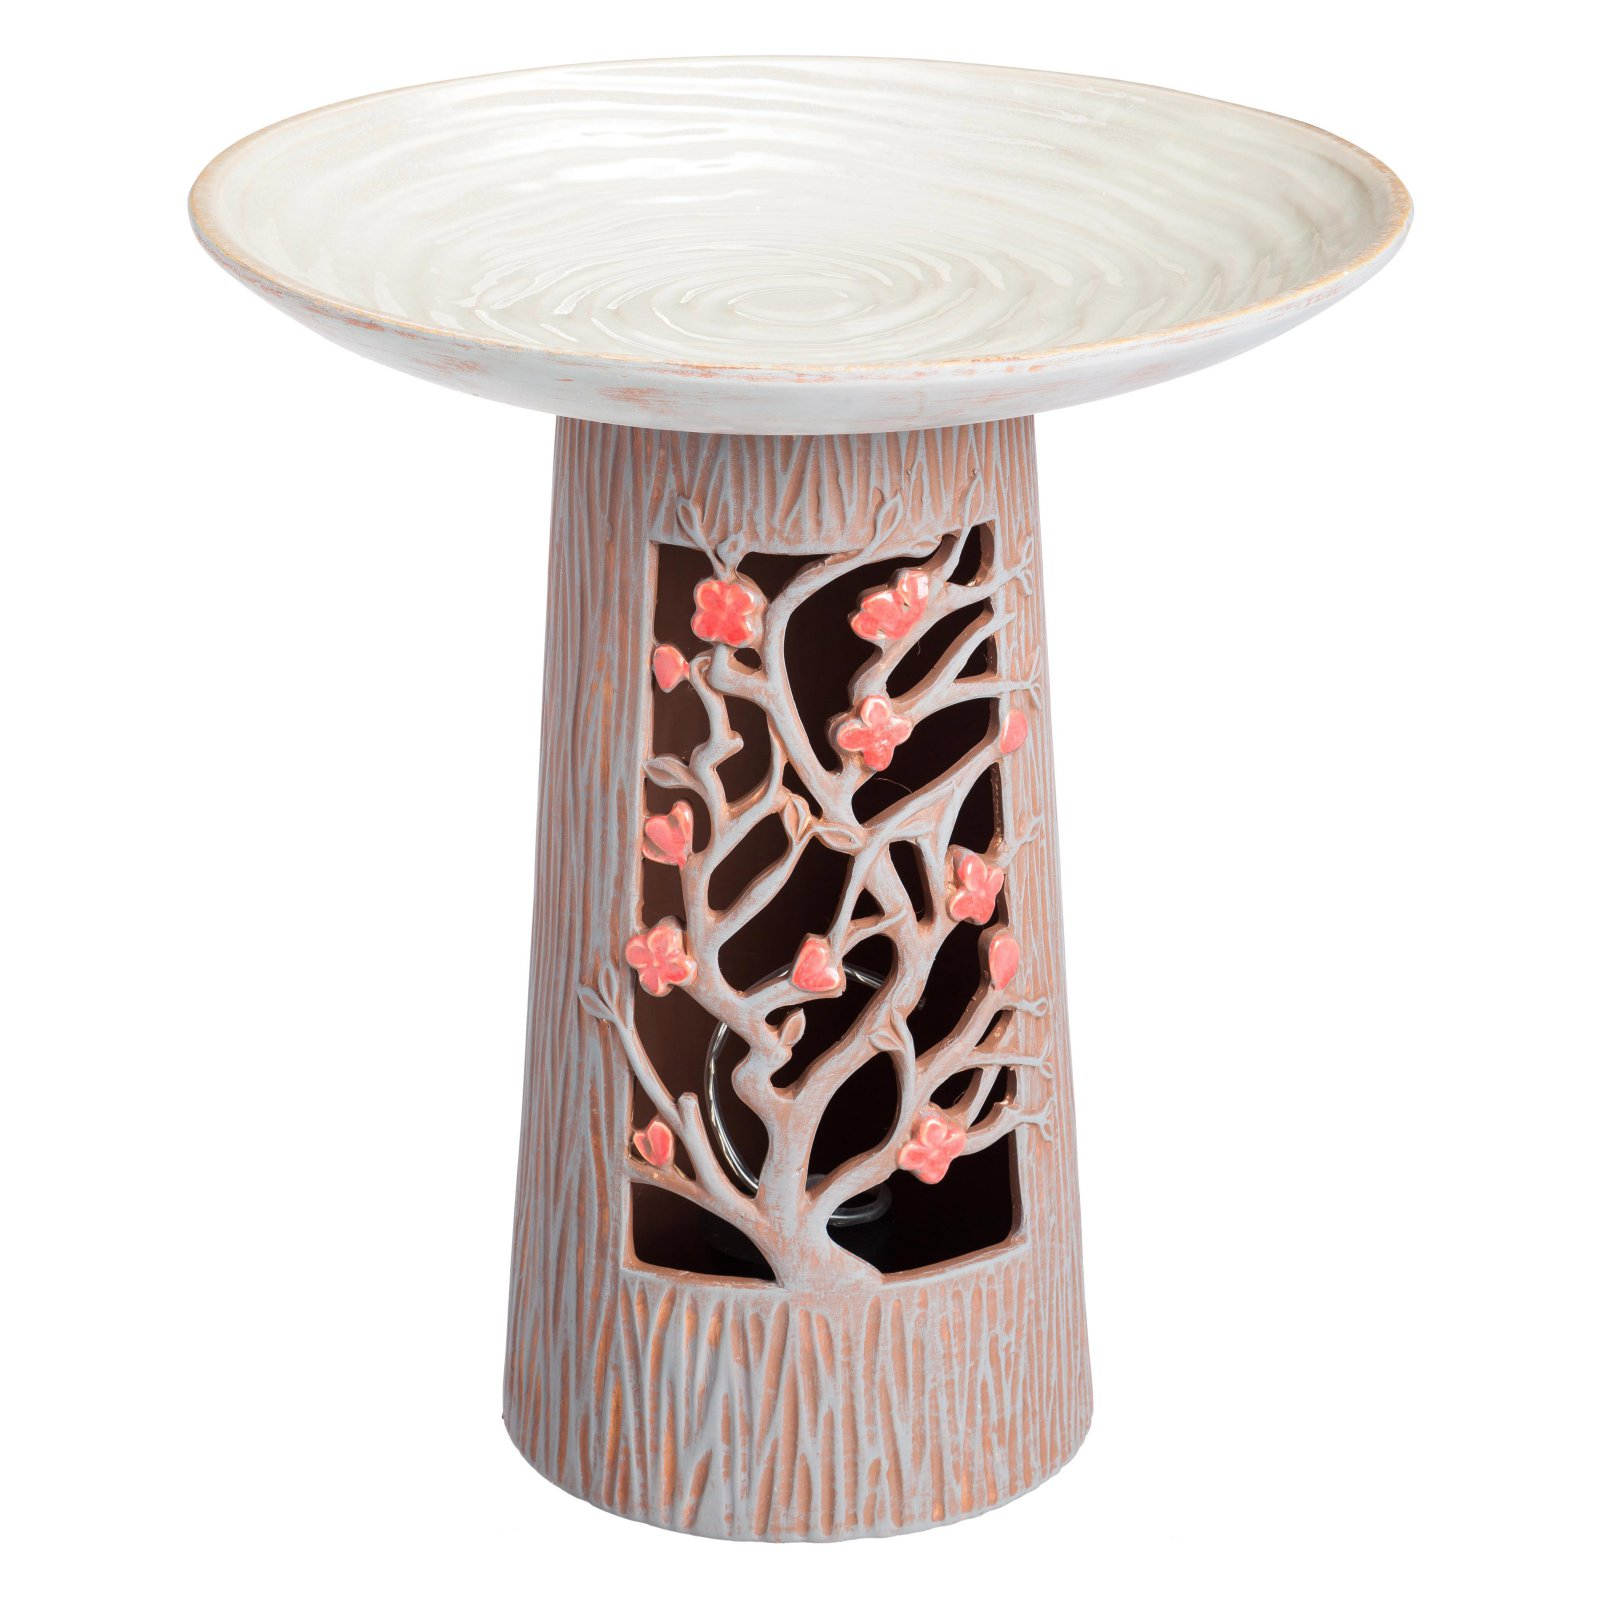 Evergreen Enterprises Ceramic Blossom Design Bird Bath with Pedestal